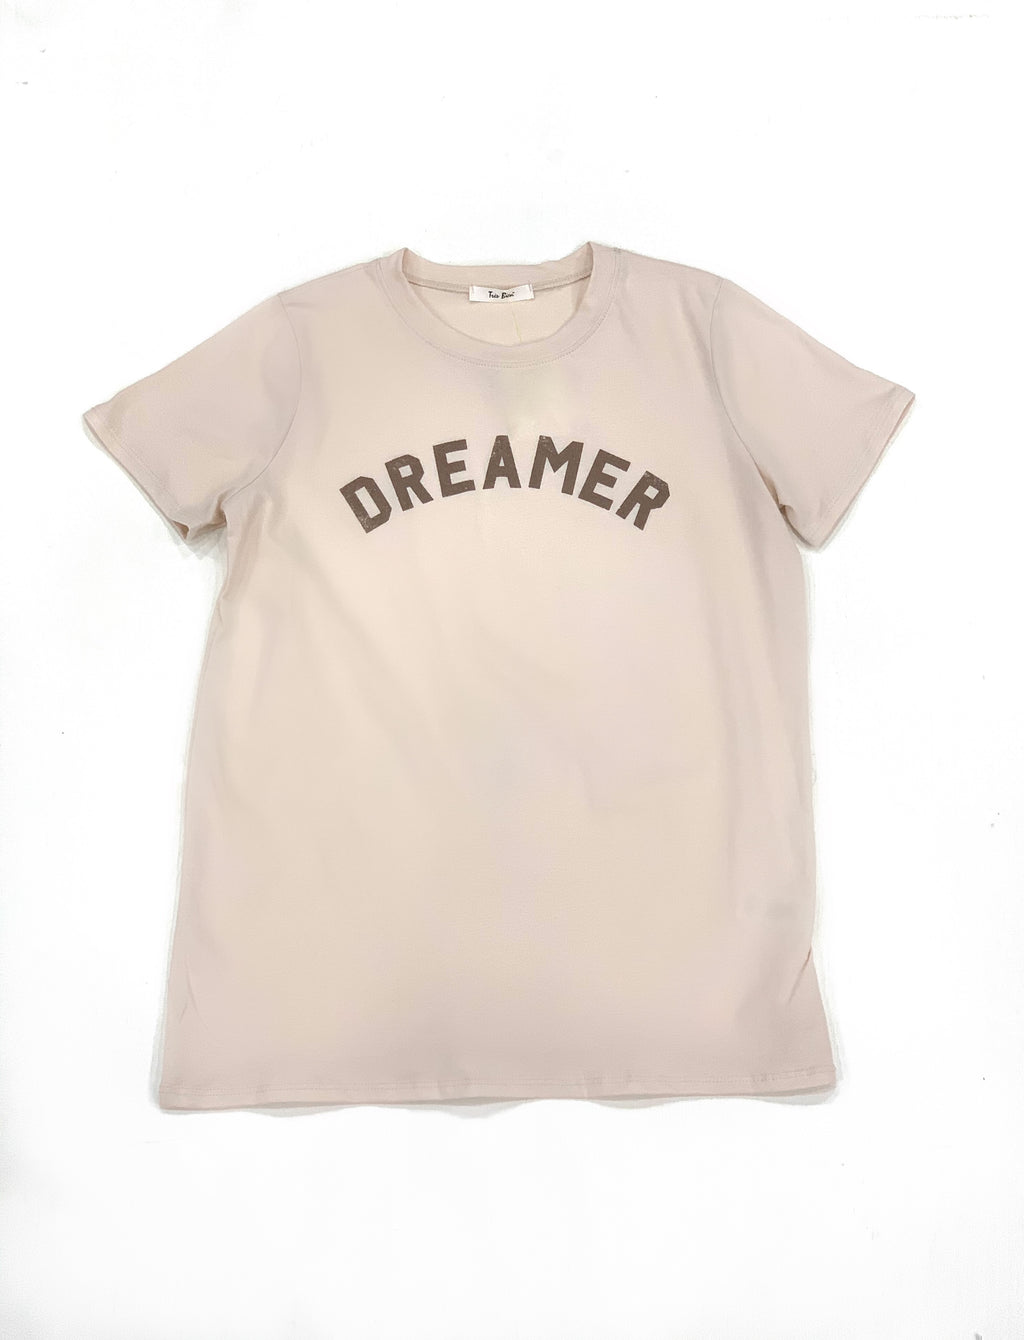 Dreamer Graphic T-Shirt